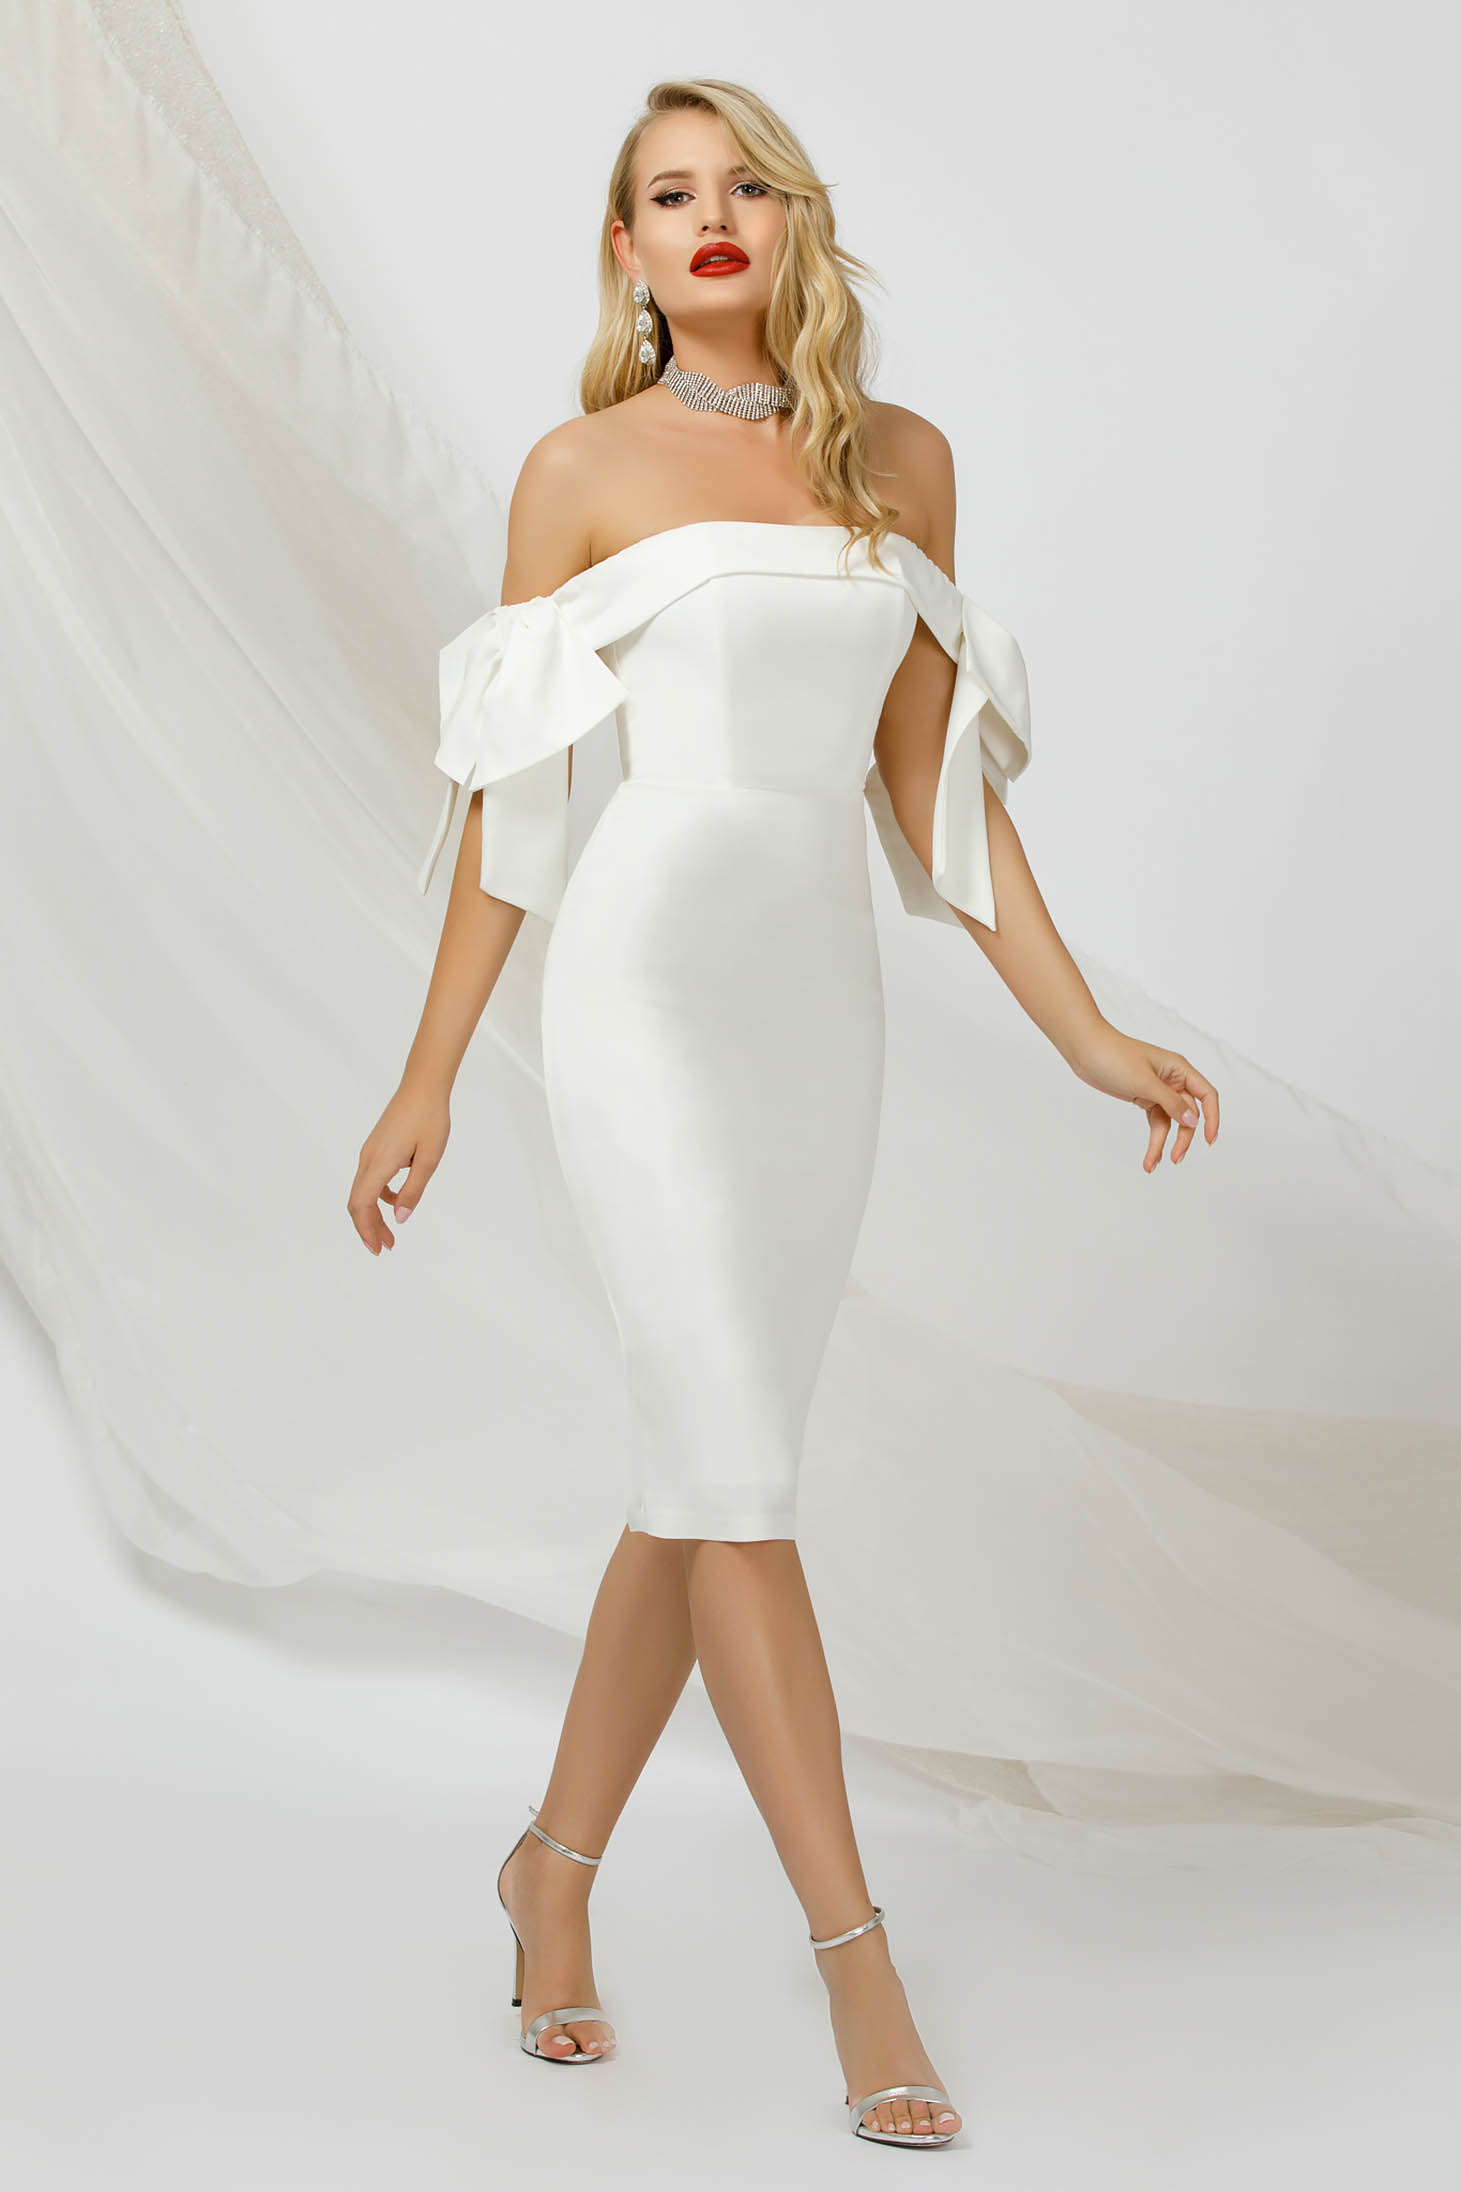 Ivory dress pencil thin fabric occasional naked shoulders with bow accessories